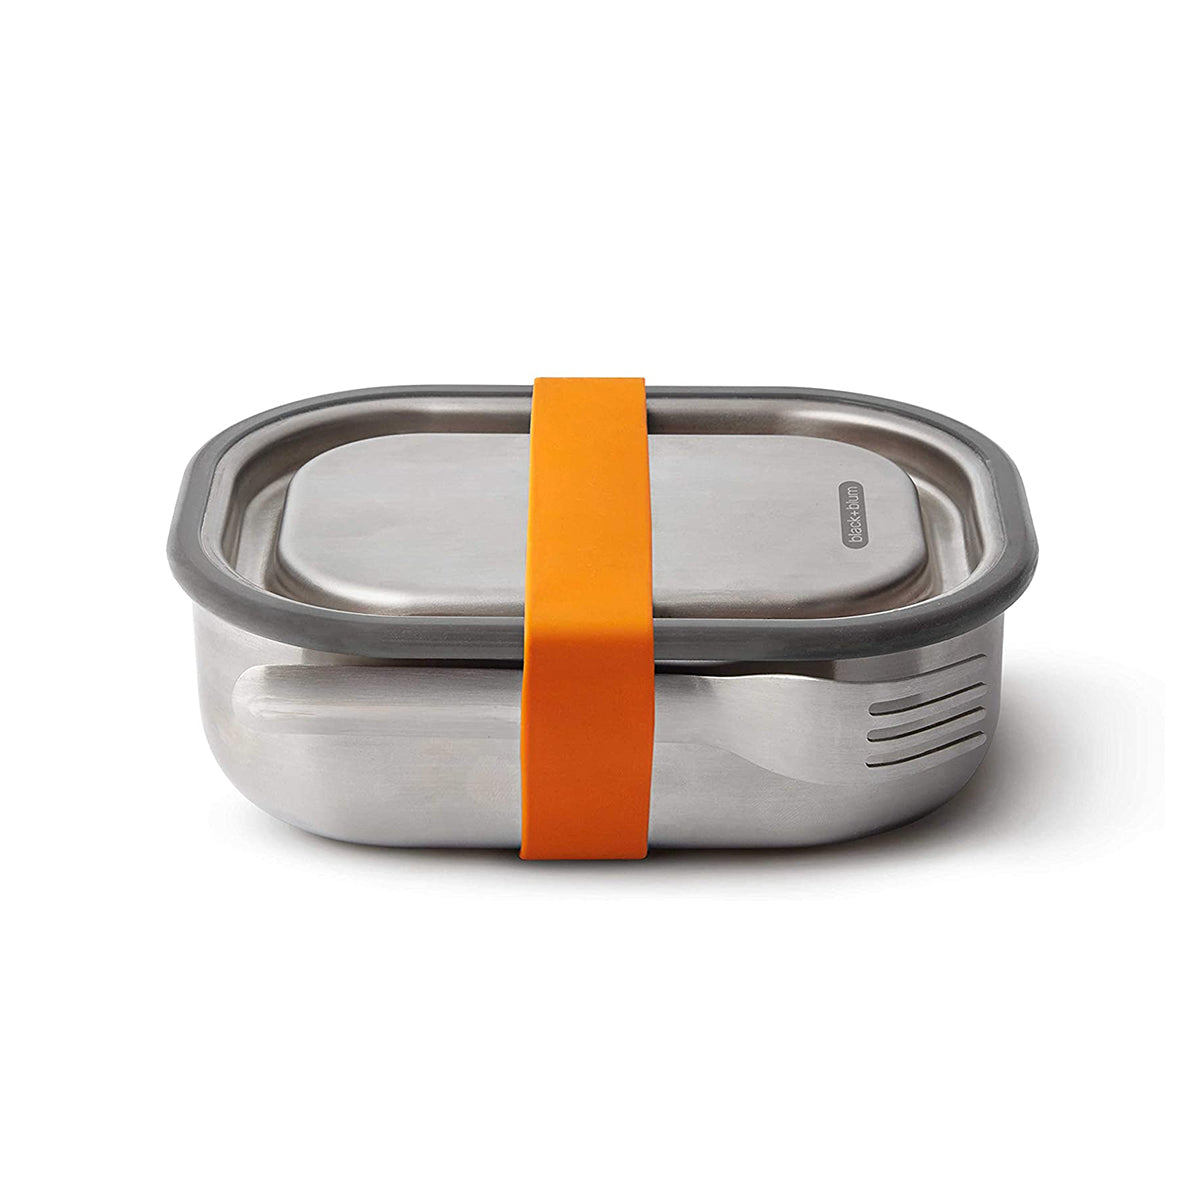 Stainless Steel Lunch Box Orange